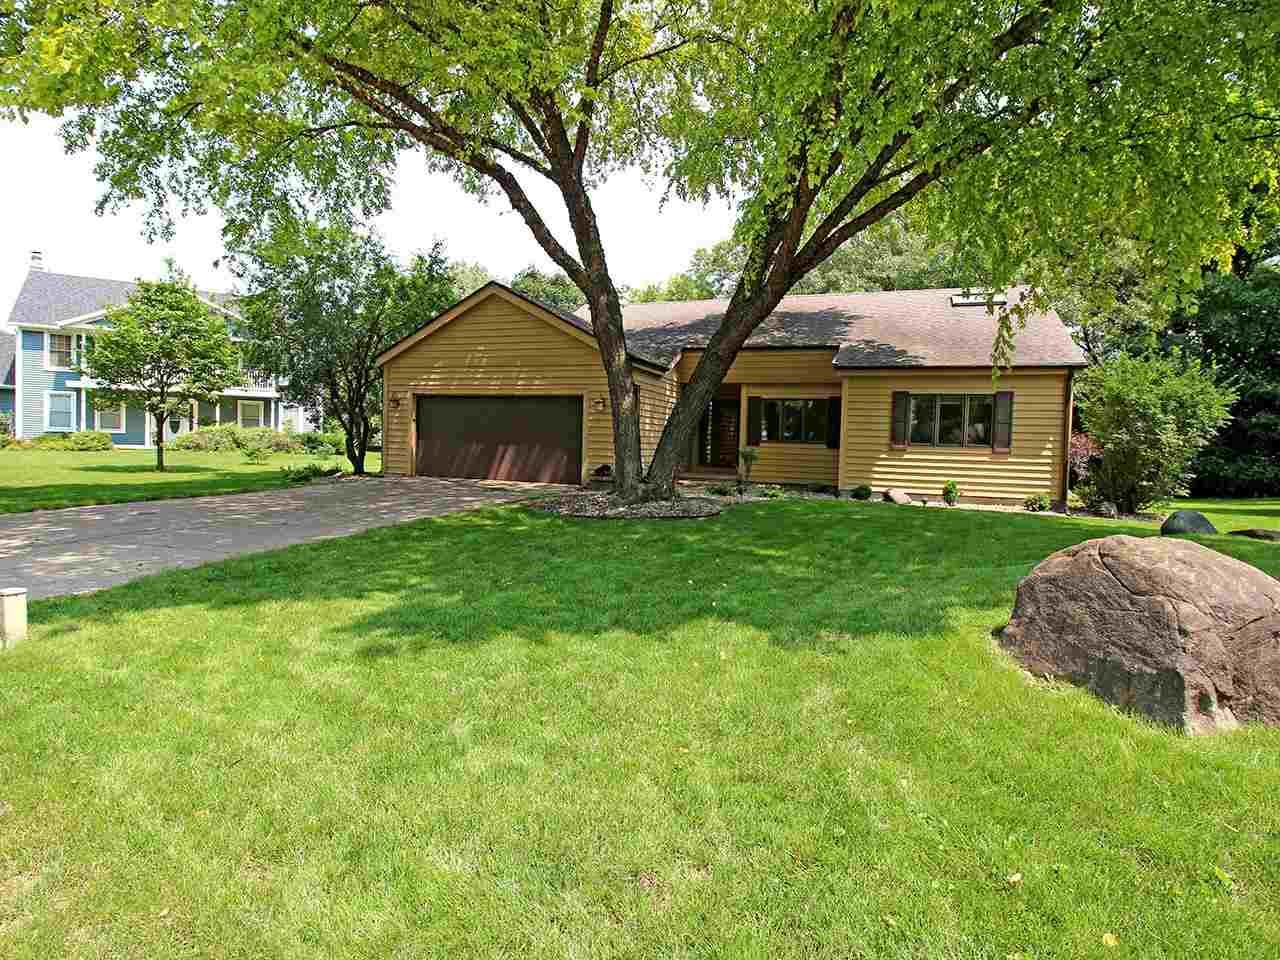 5806 Forest View Ct, Fitchburg, WI 53711 - #: 1915301